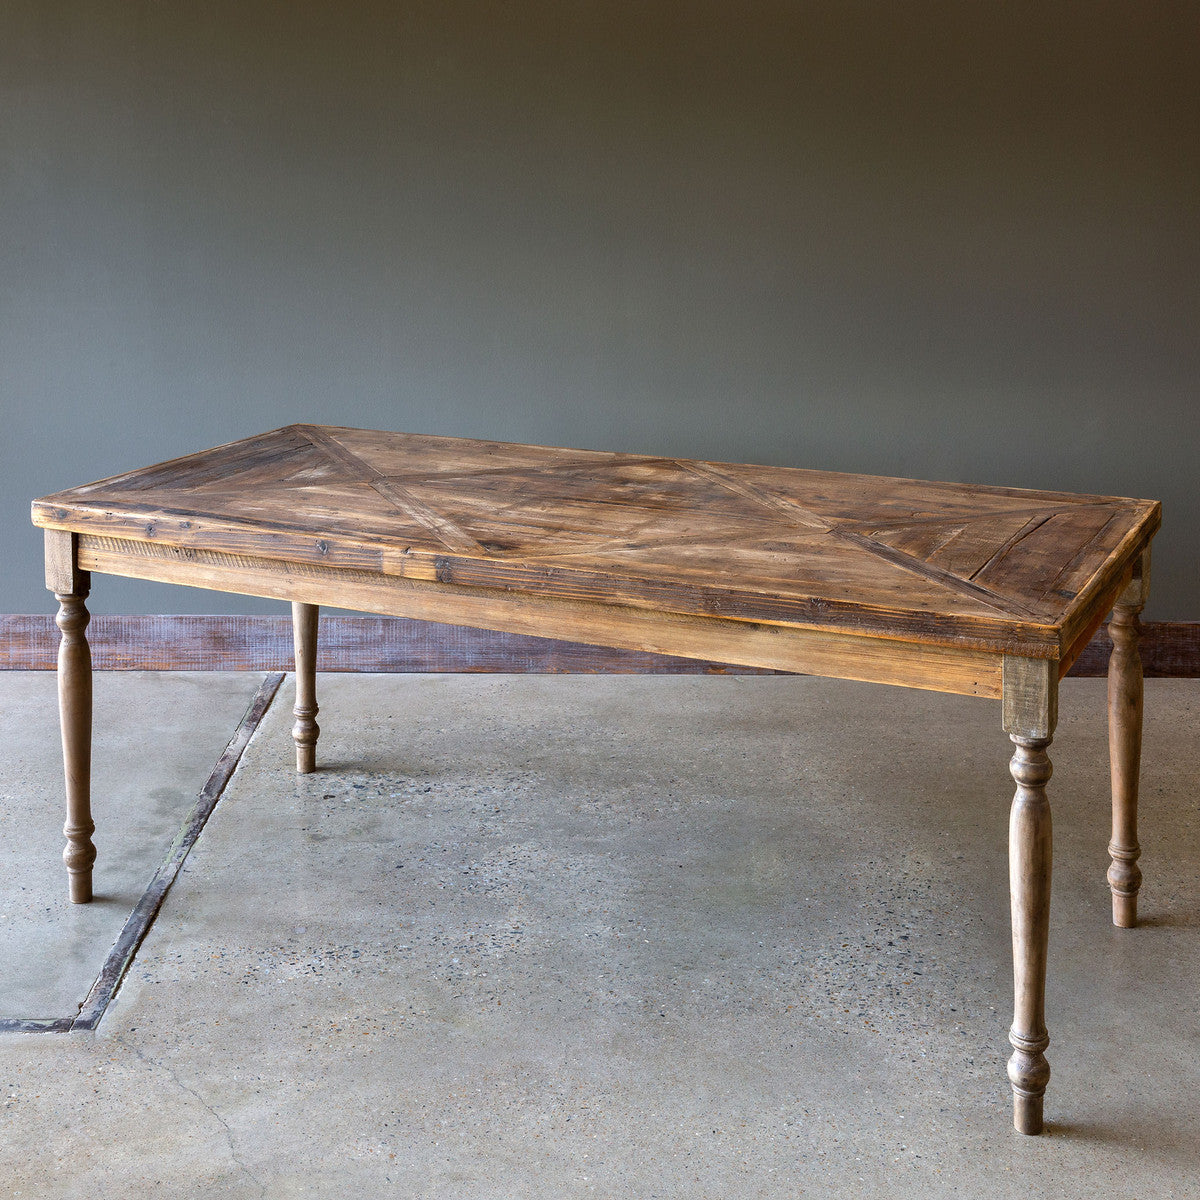 Reclaimed Farm Table - ETA 11/30/2020